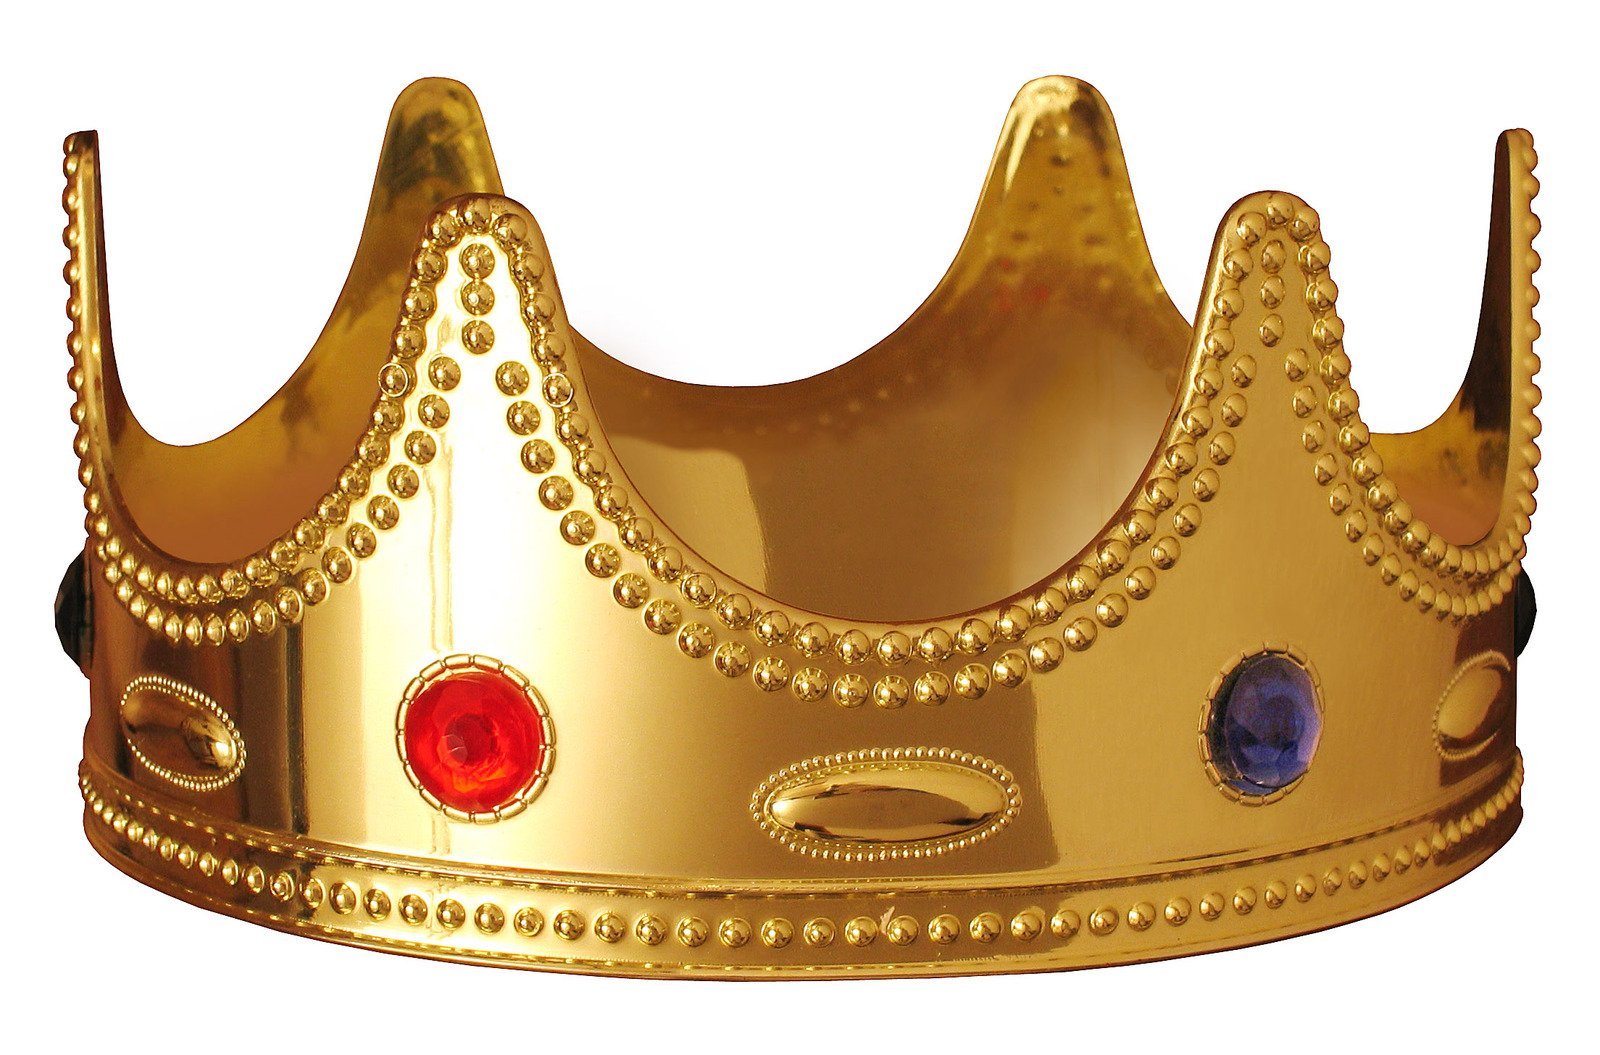 free crown images pictures and royalty free stock photos